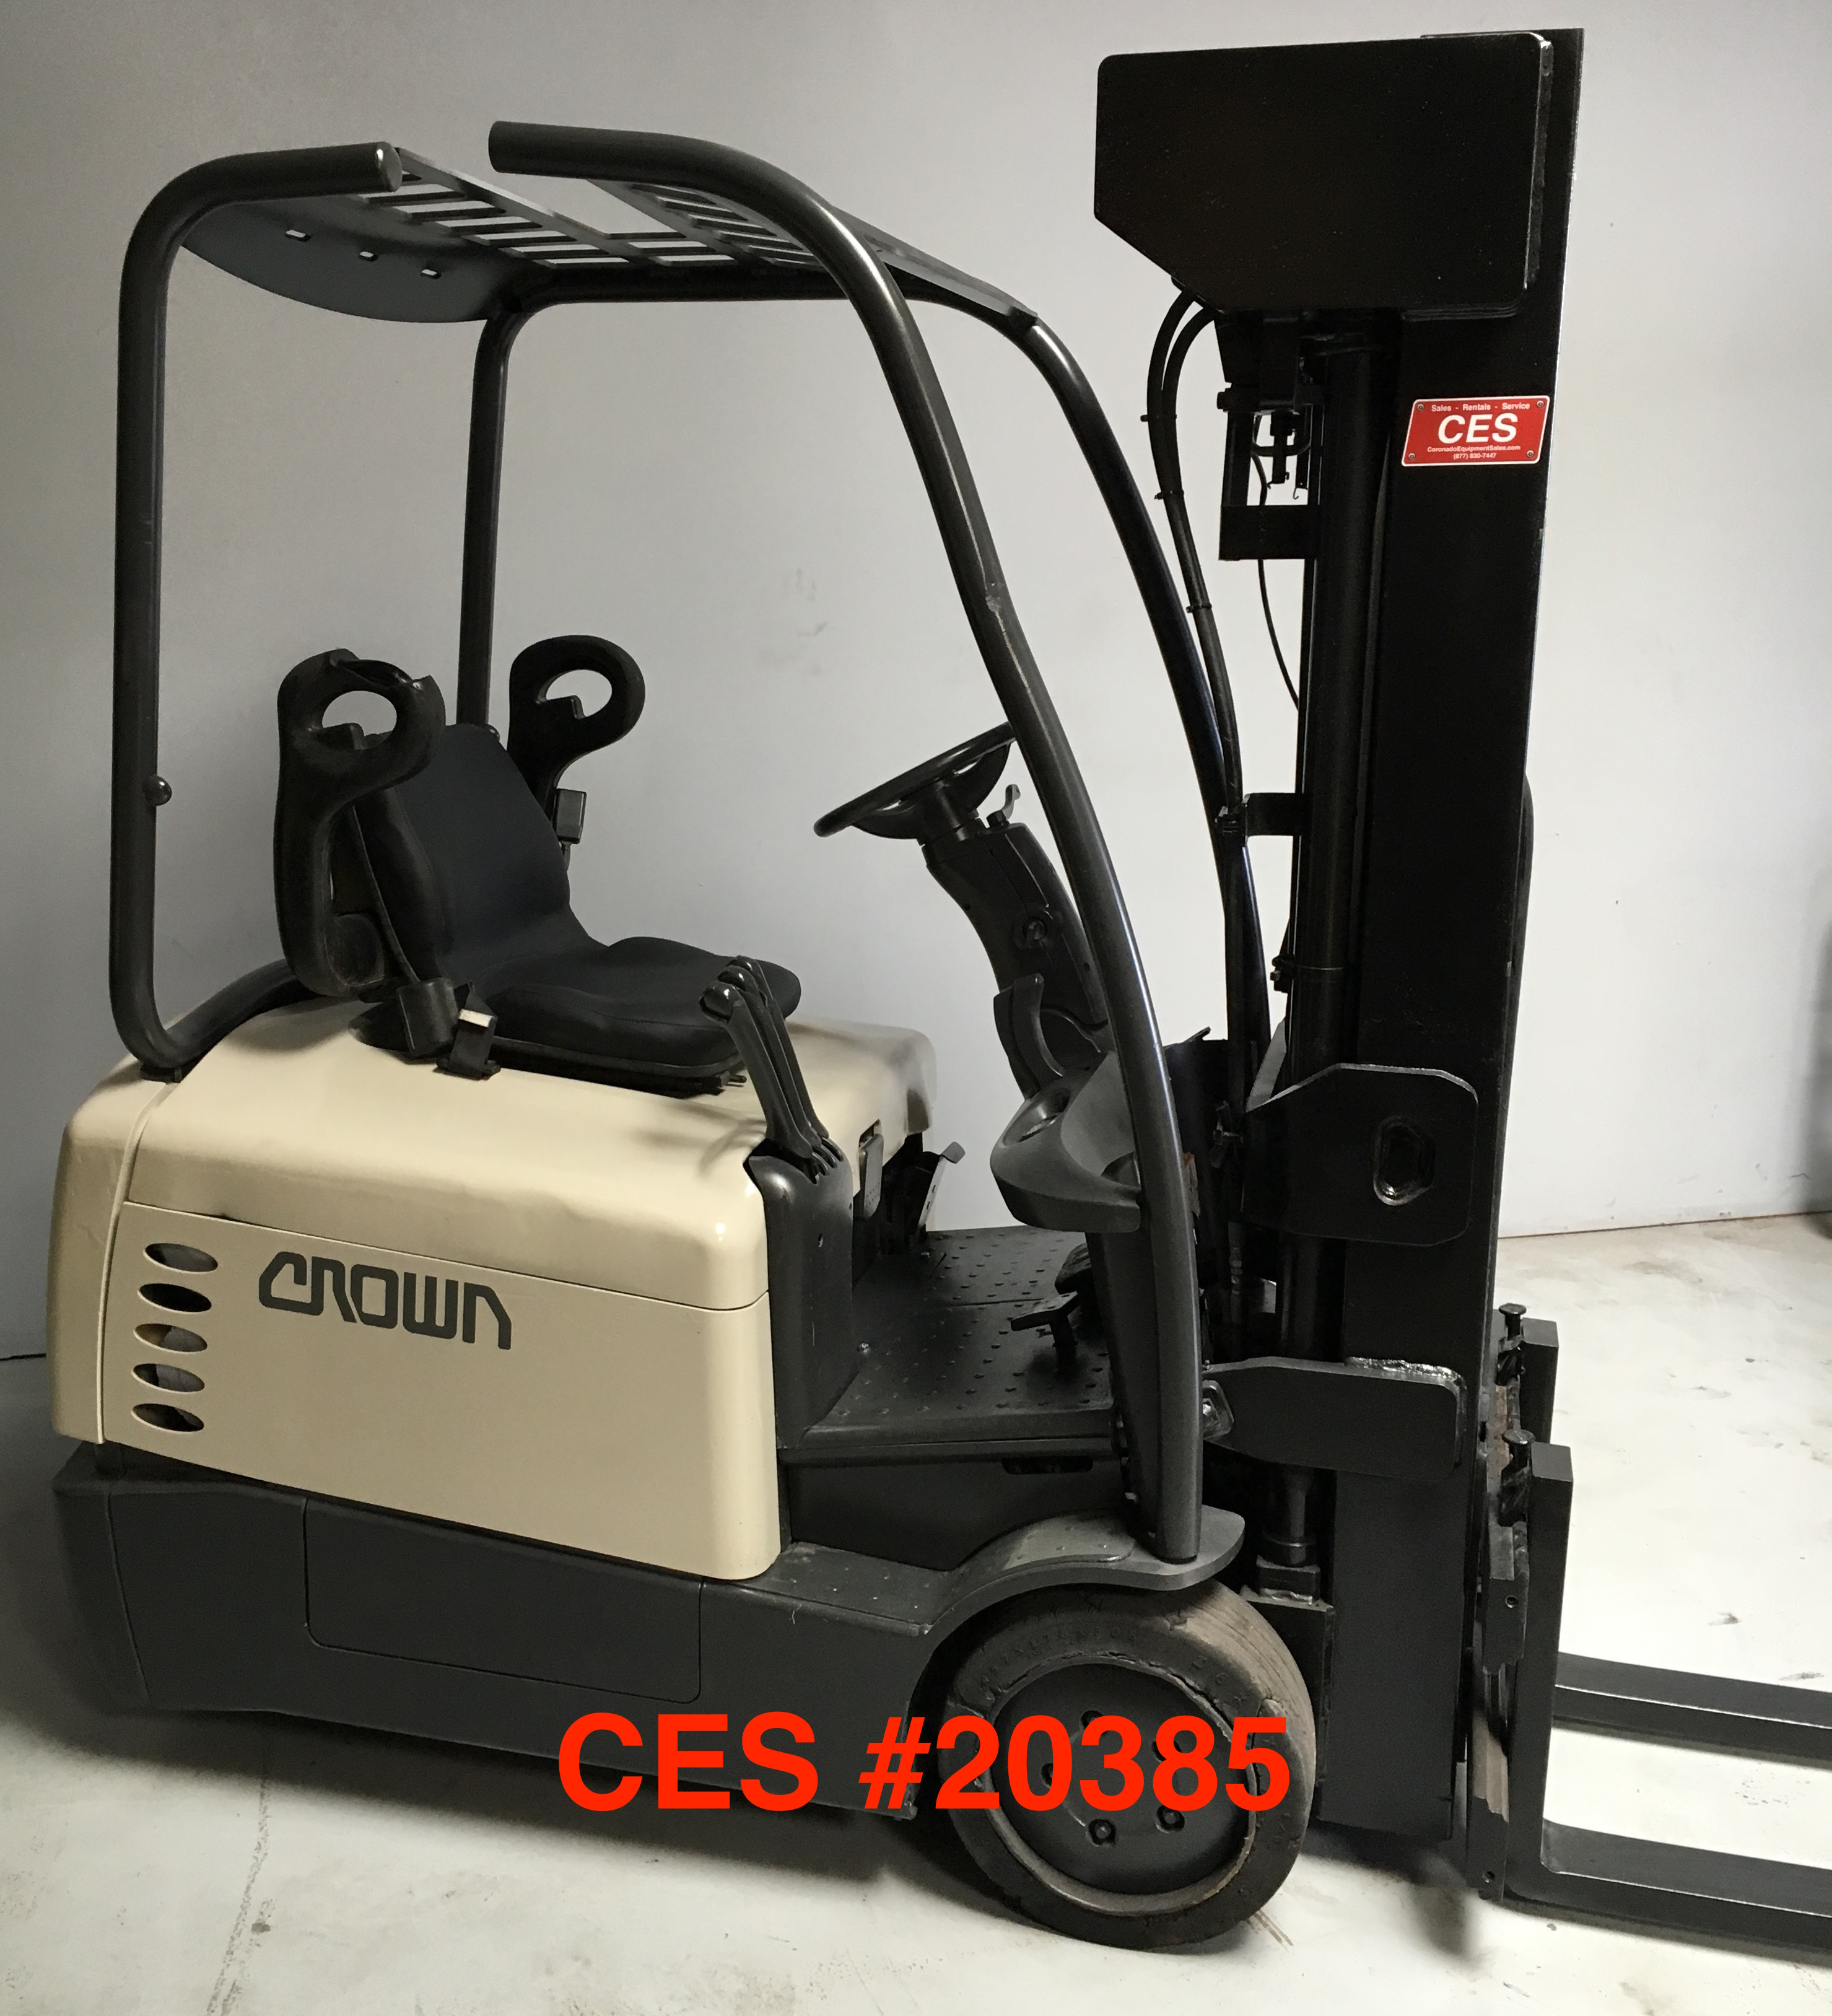 Crown Narrow Aisle 3 Wheel Electric Forklift 20385